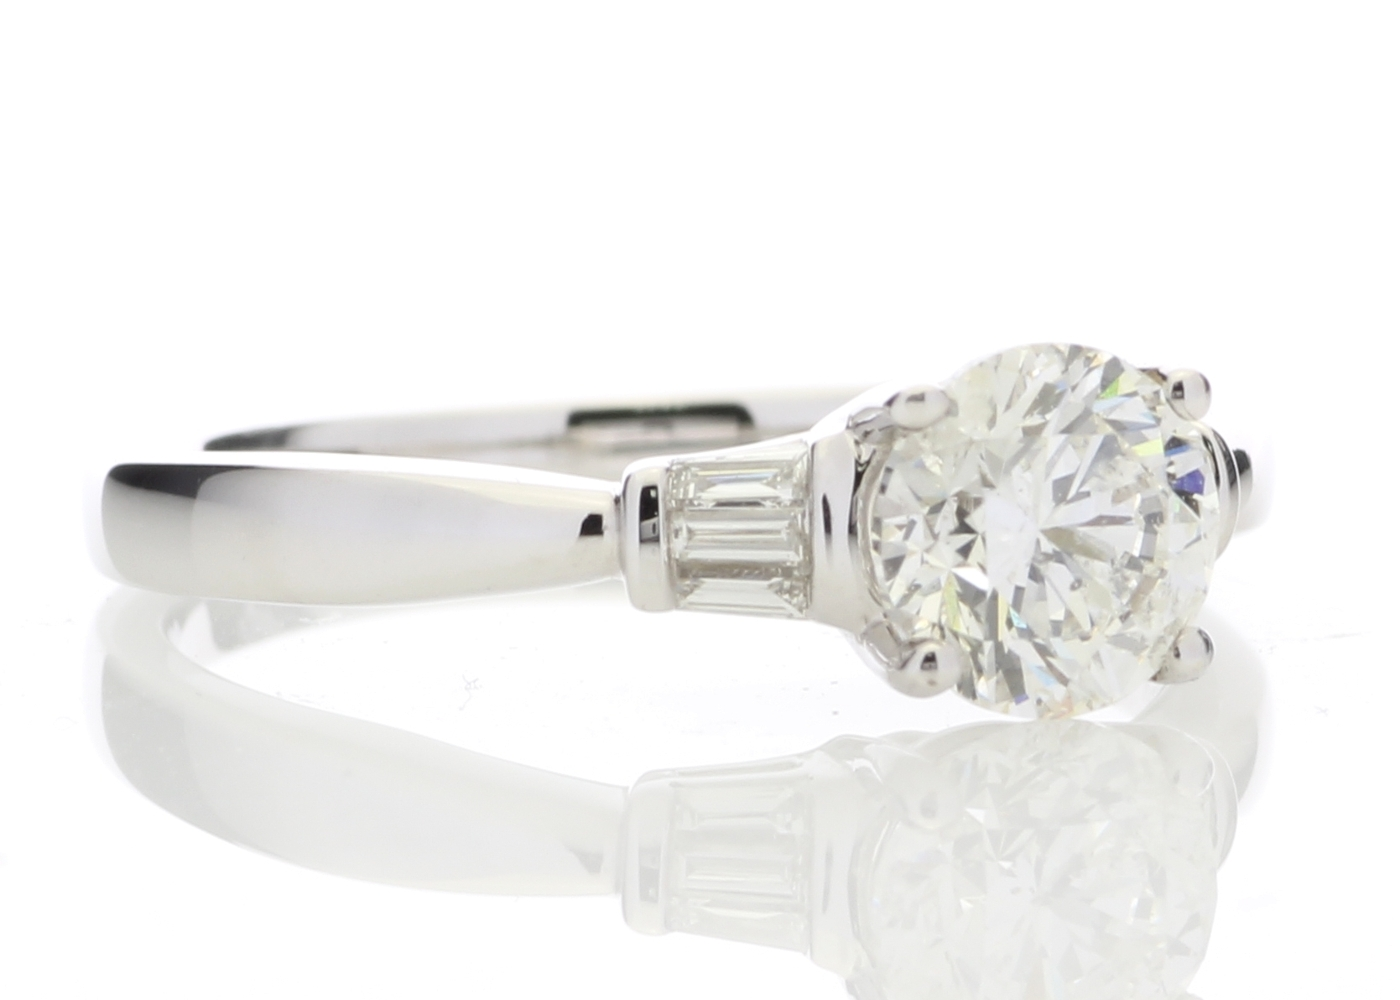 18k White Gold Diamond Ring With Baguette 1.15 Carats - Image 4 of 5